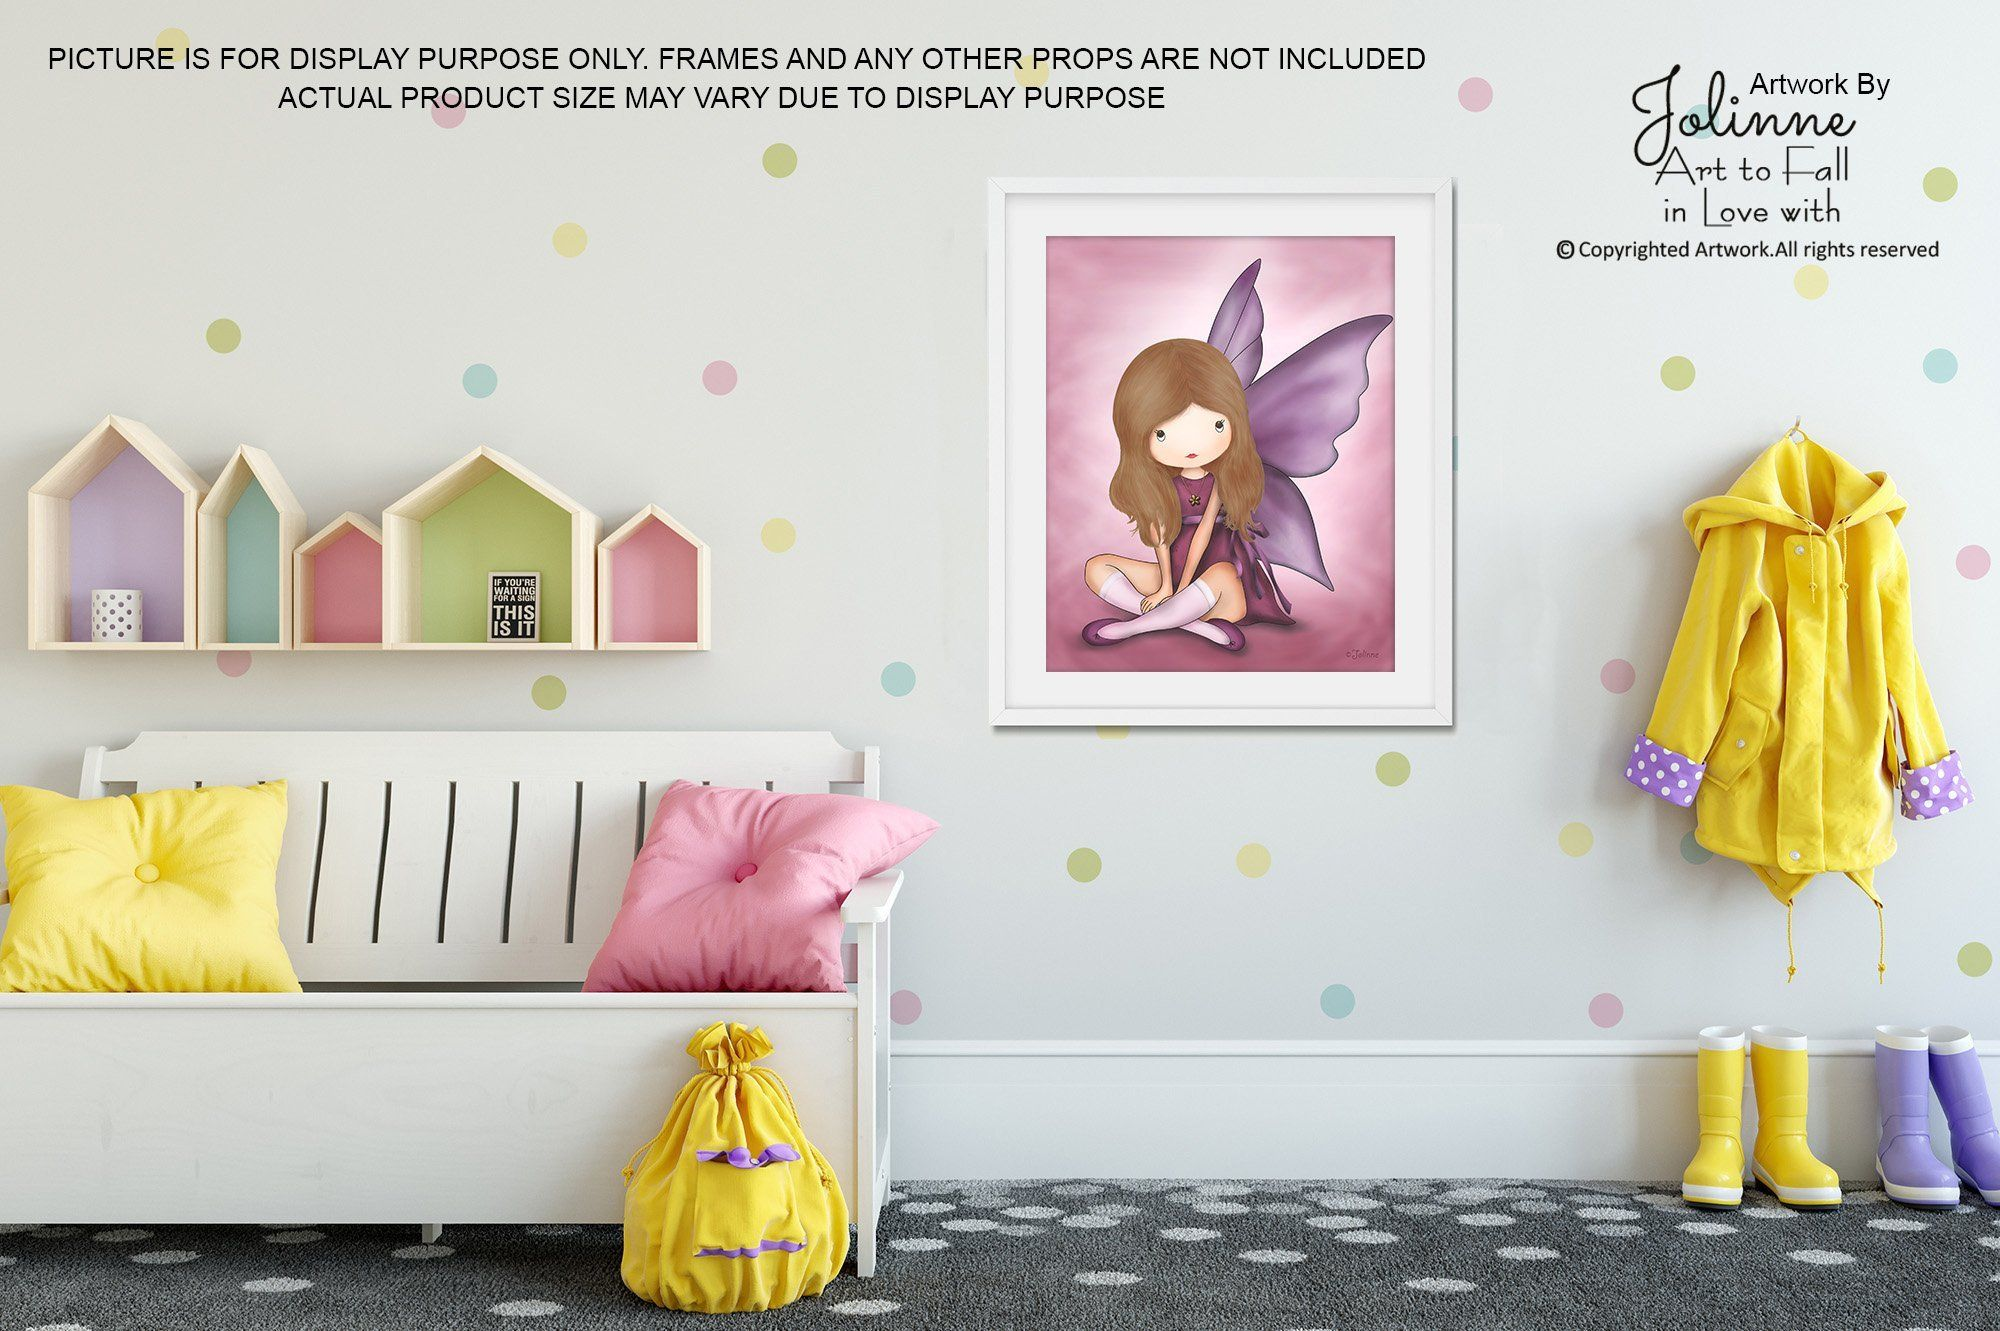 Girls angel room decor wall art kids bedroom pink fairy poster baby